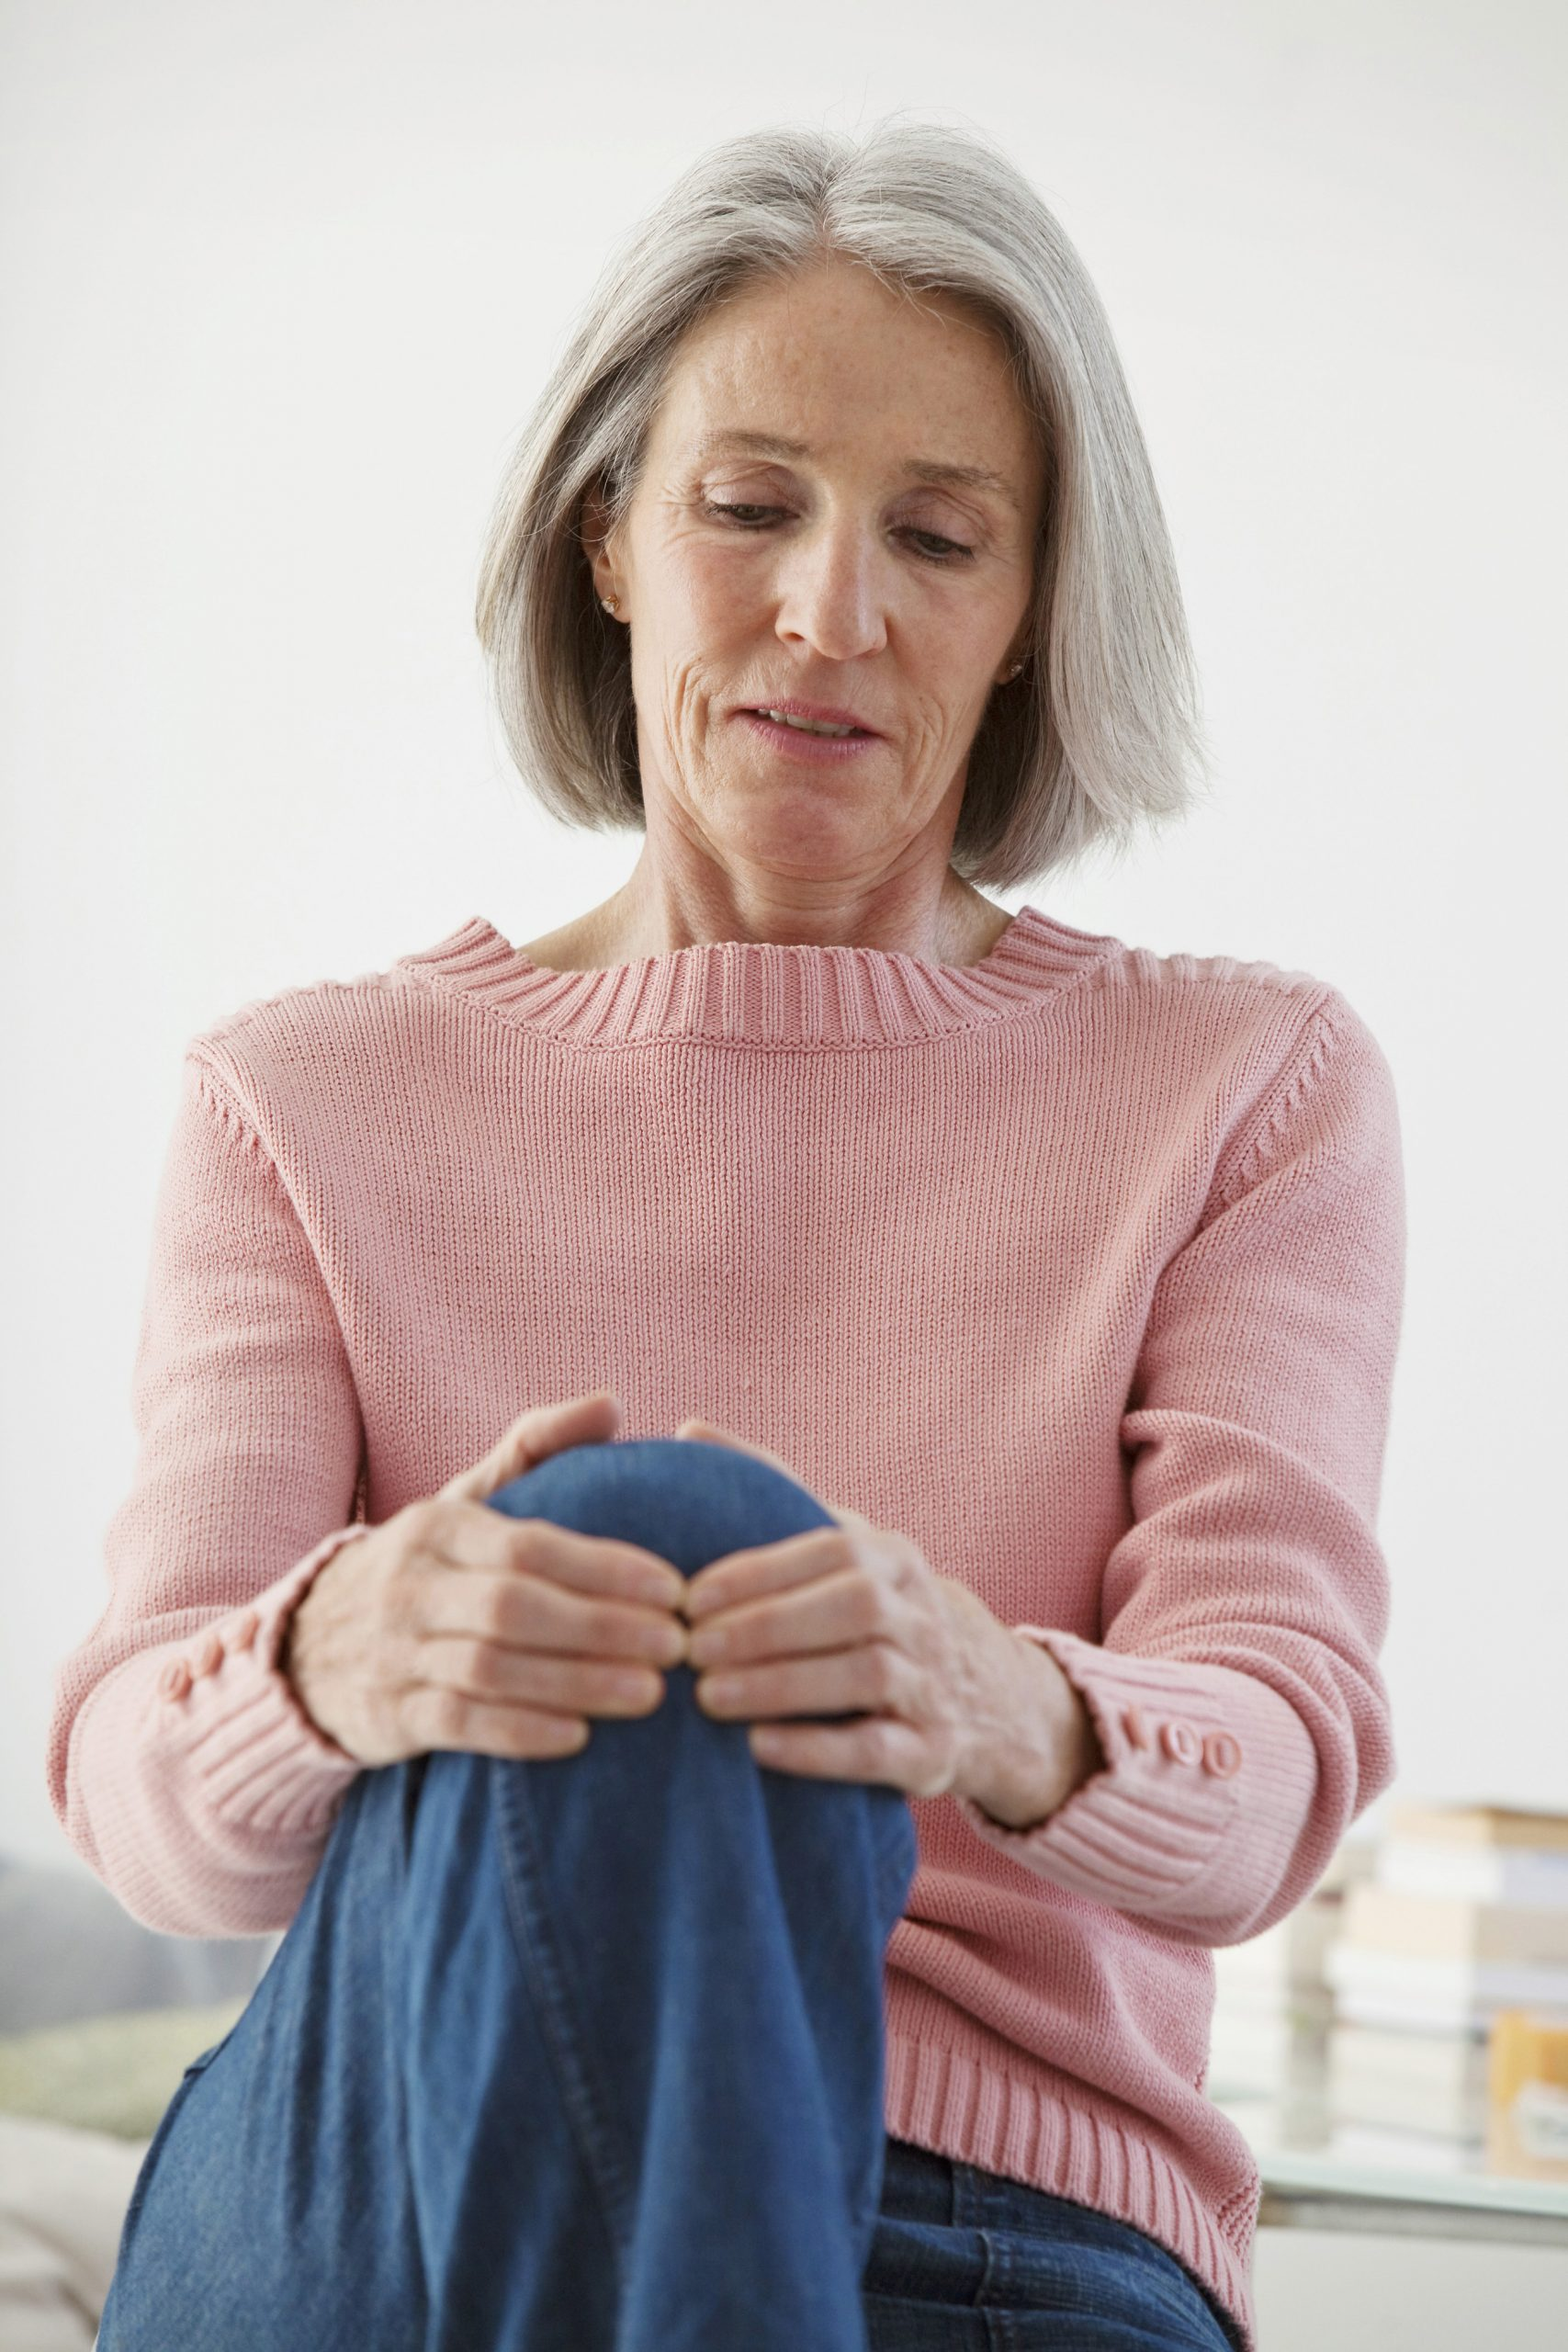 When is the right time to step in and help your elder?